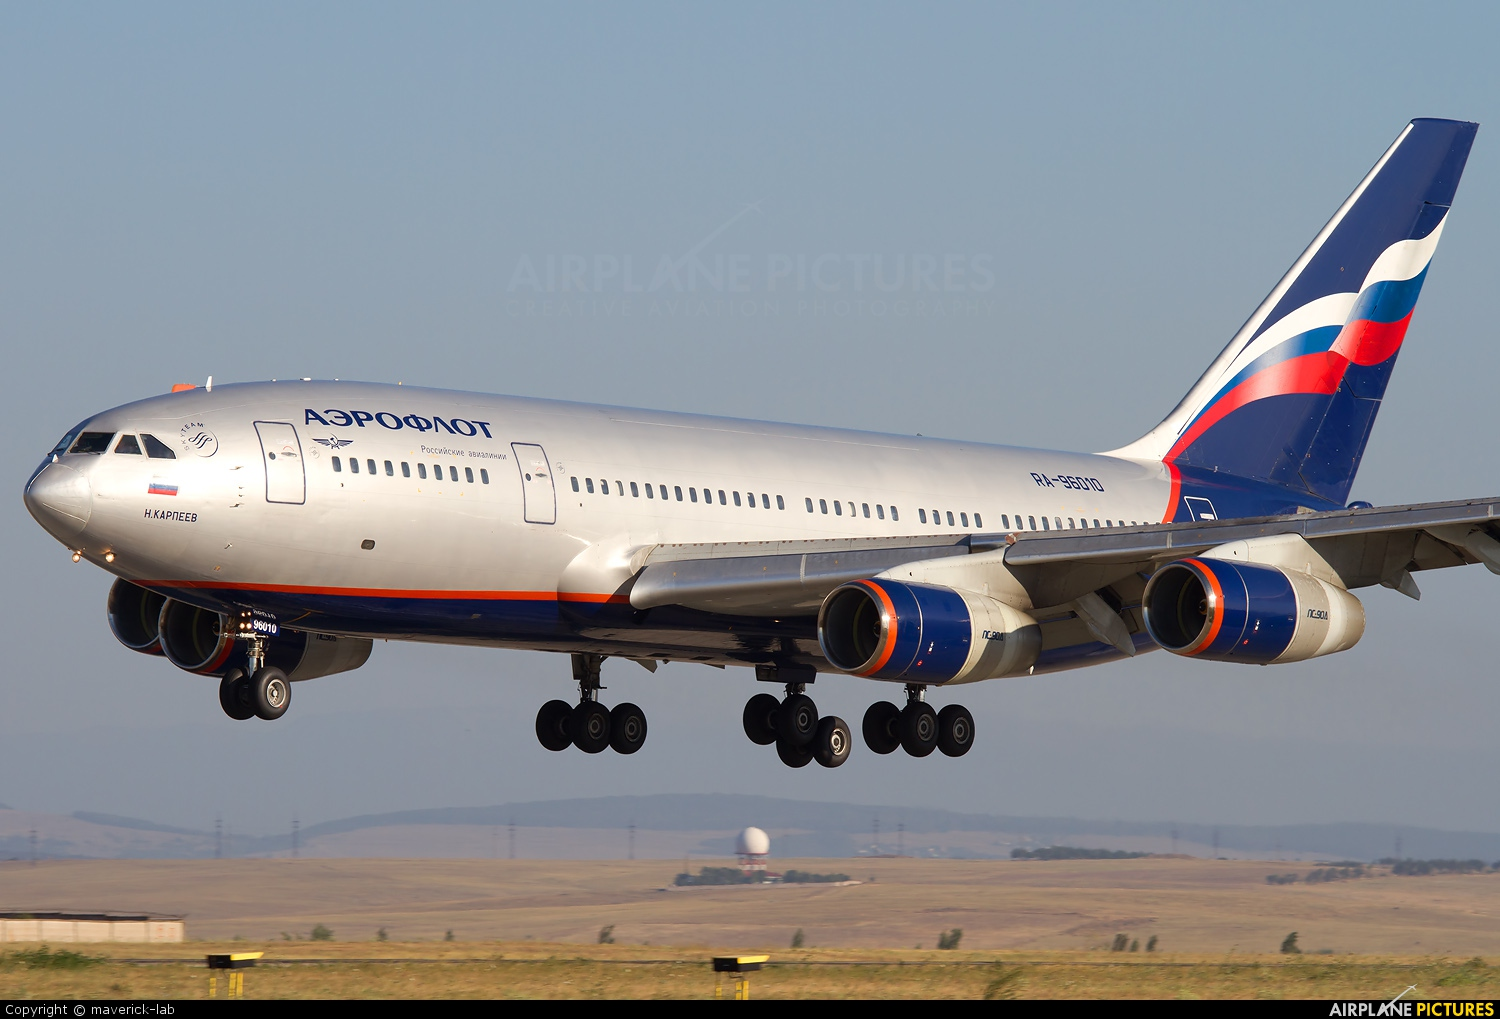 Aeroflot RA-96010 aircraft at Simferopol International Airport (under Russian occupation)